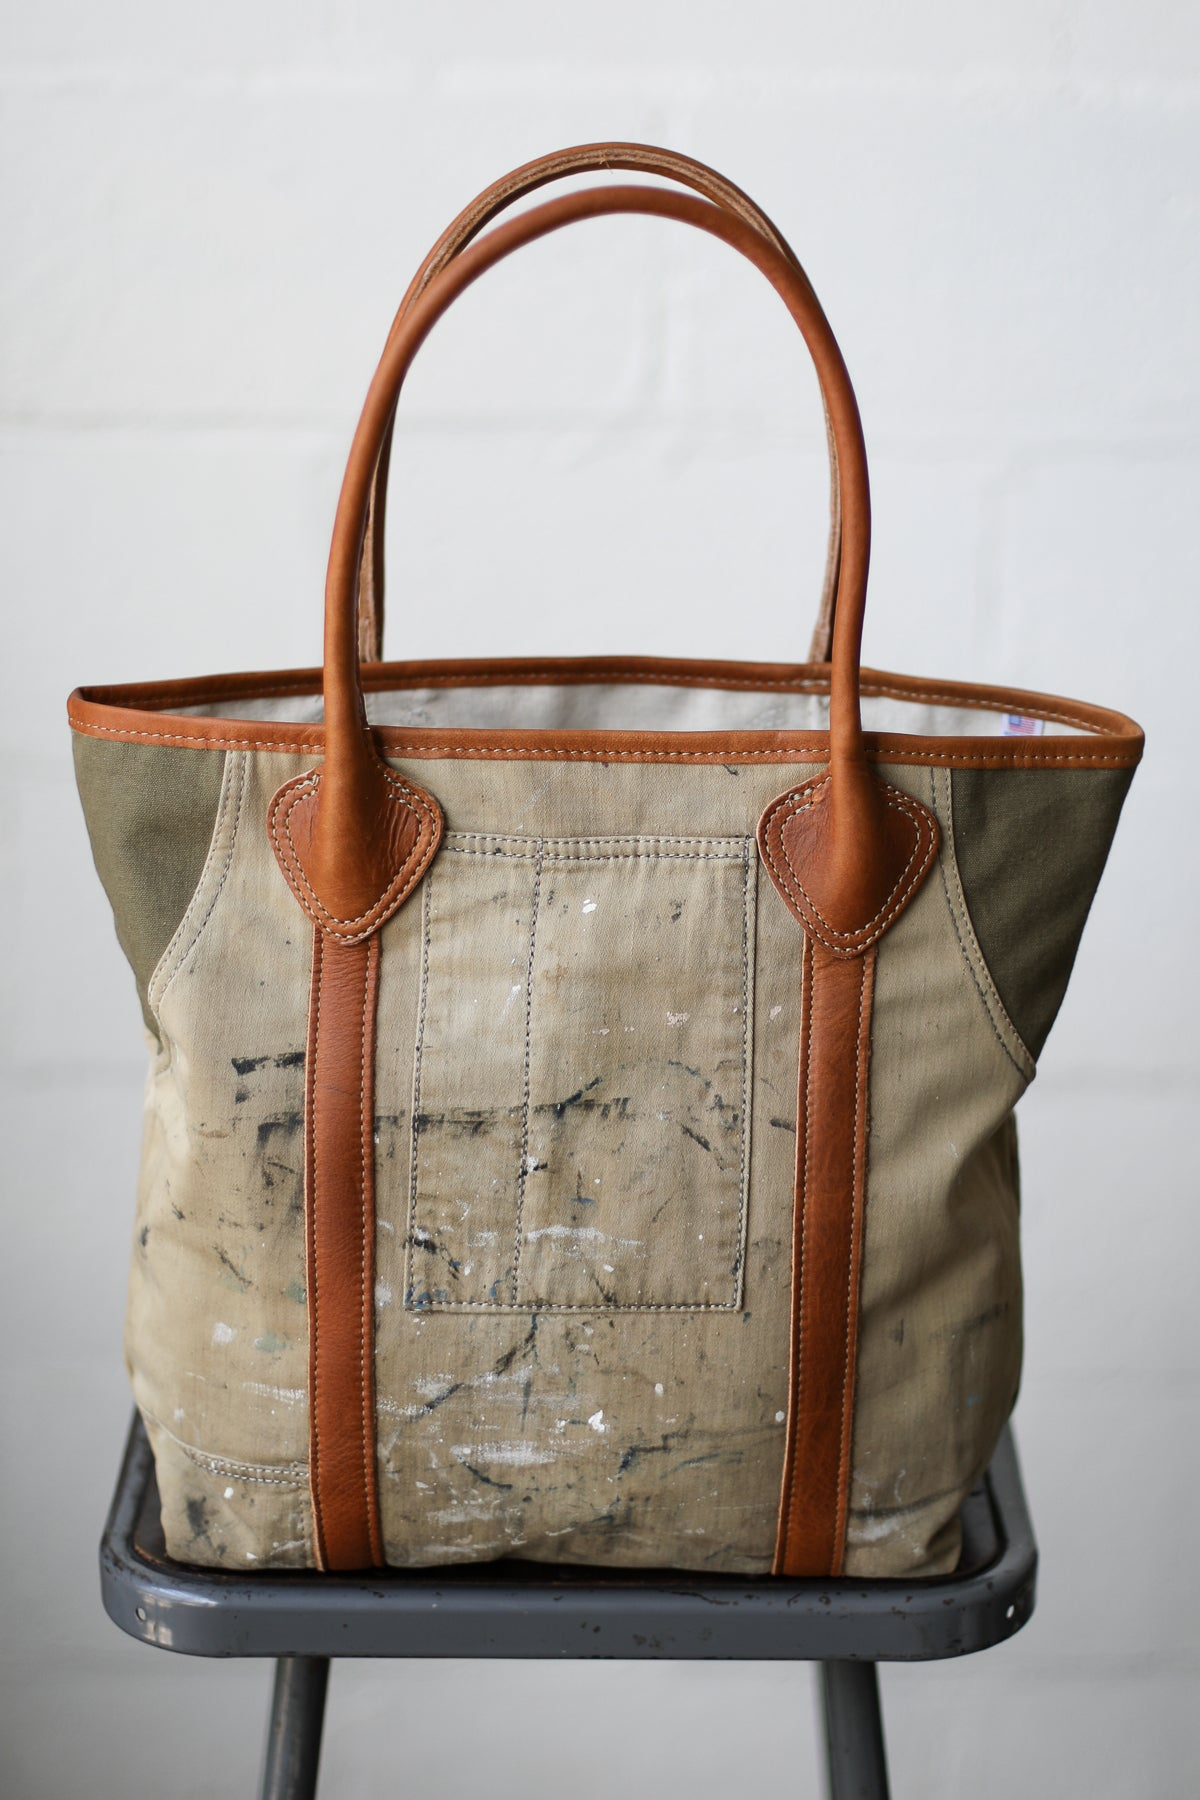 1940's era Salvaged Painter's Apron Tote Bag